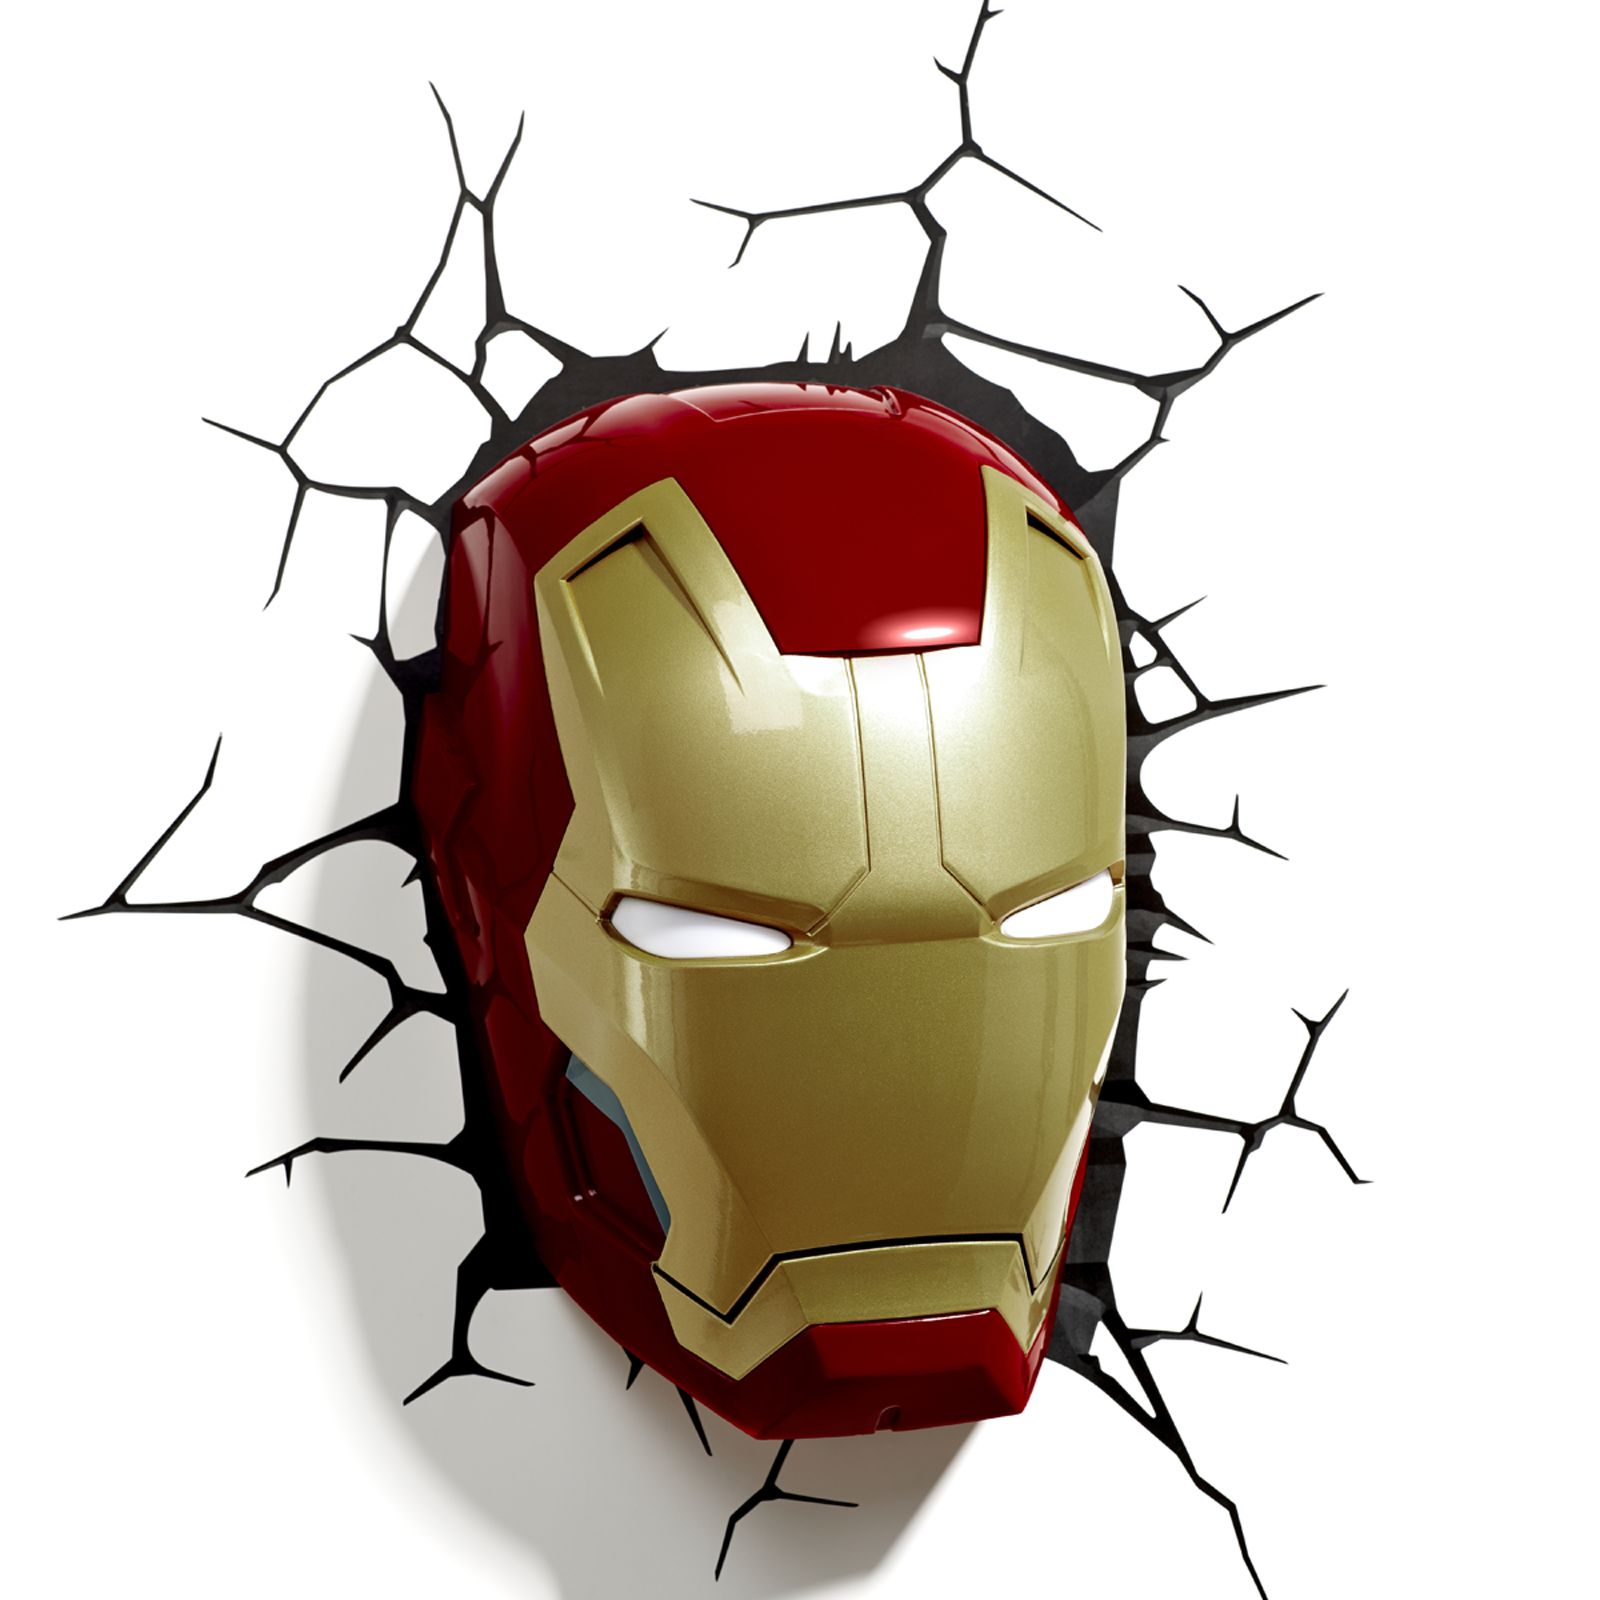 MARVEL AVENGERS 3D WALL LIGHT - HULK, IRON MAN, CAPTAIN AMERICA, THOR, SPIDERMAN eBay